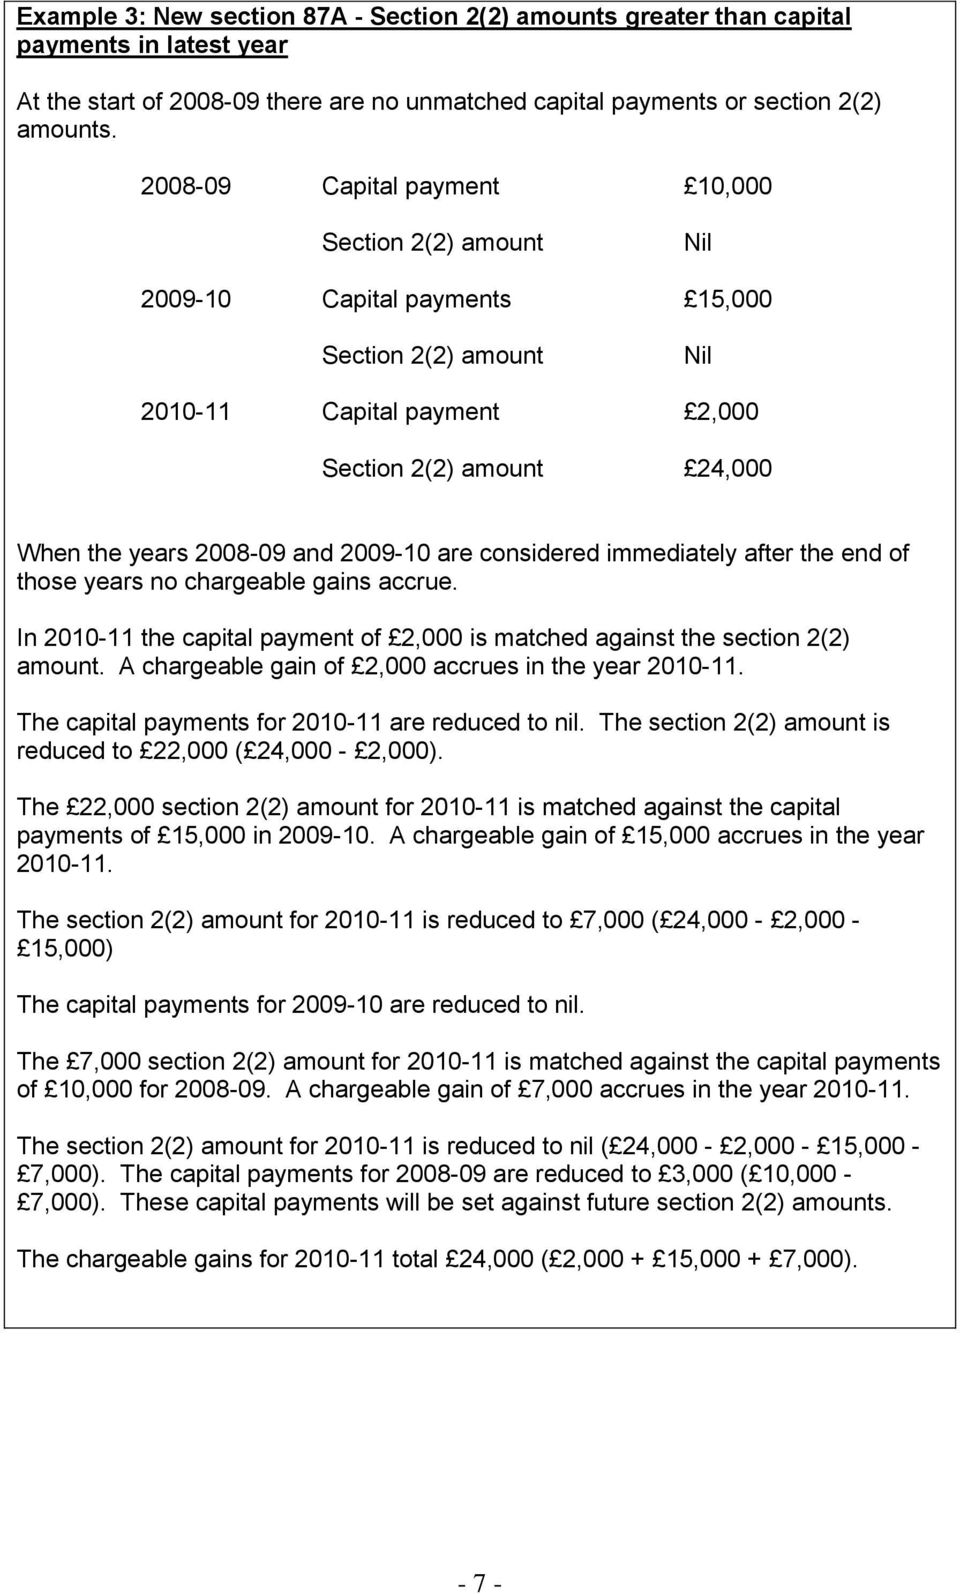 2009-10 are considered immediately after the end of those years no chargeable gains accrue. In 2010-11 the capital payment of 2,000 is matched against the section 2(2) amount.